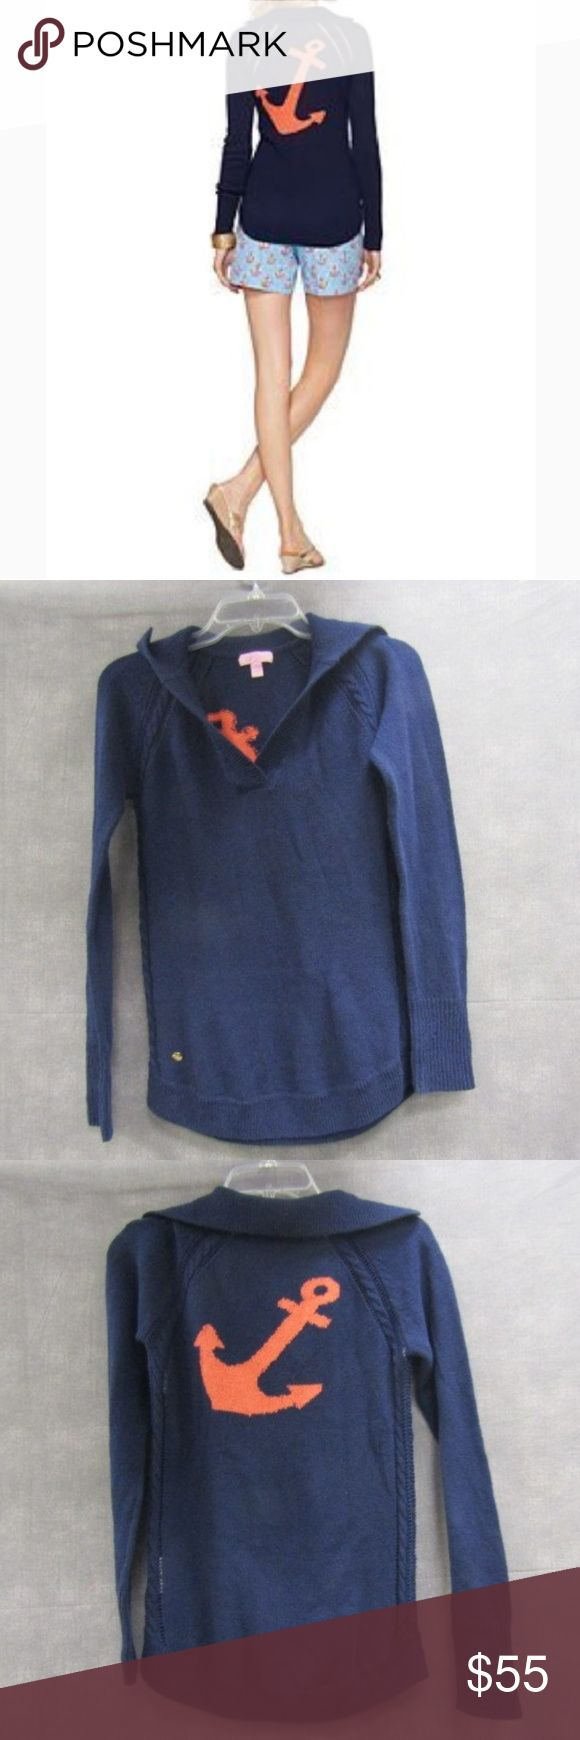 Lilly Pulitzer Navy Blue Anchor Sweater S Size small  100% cotton Lilly Pulitzer Collared sweater Lilly Pulitzer Sweaters